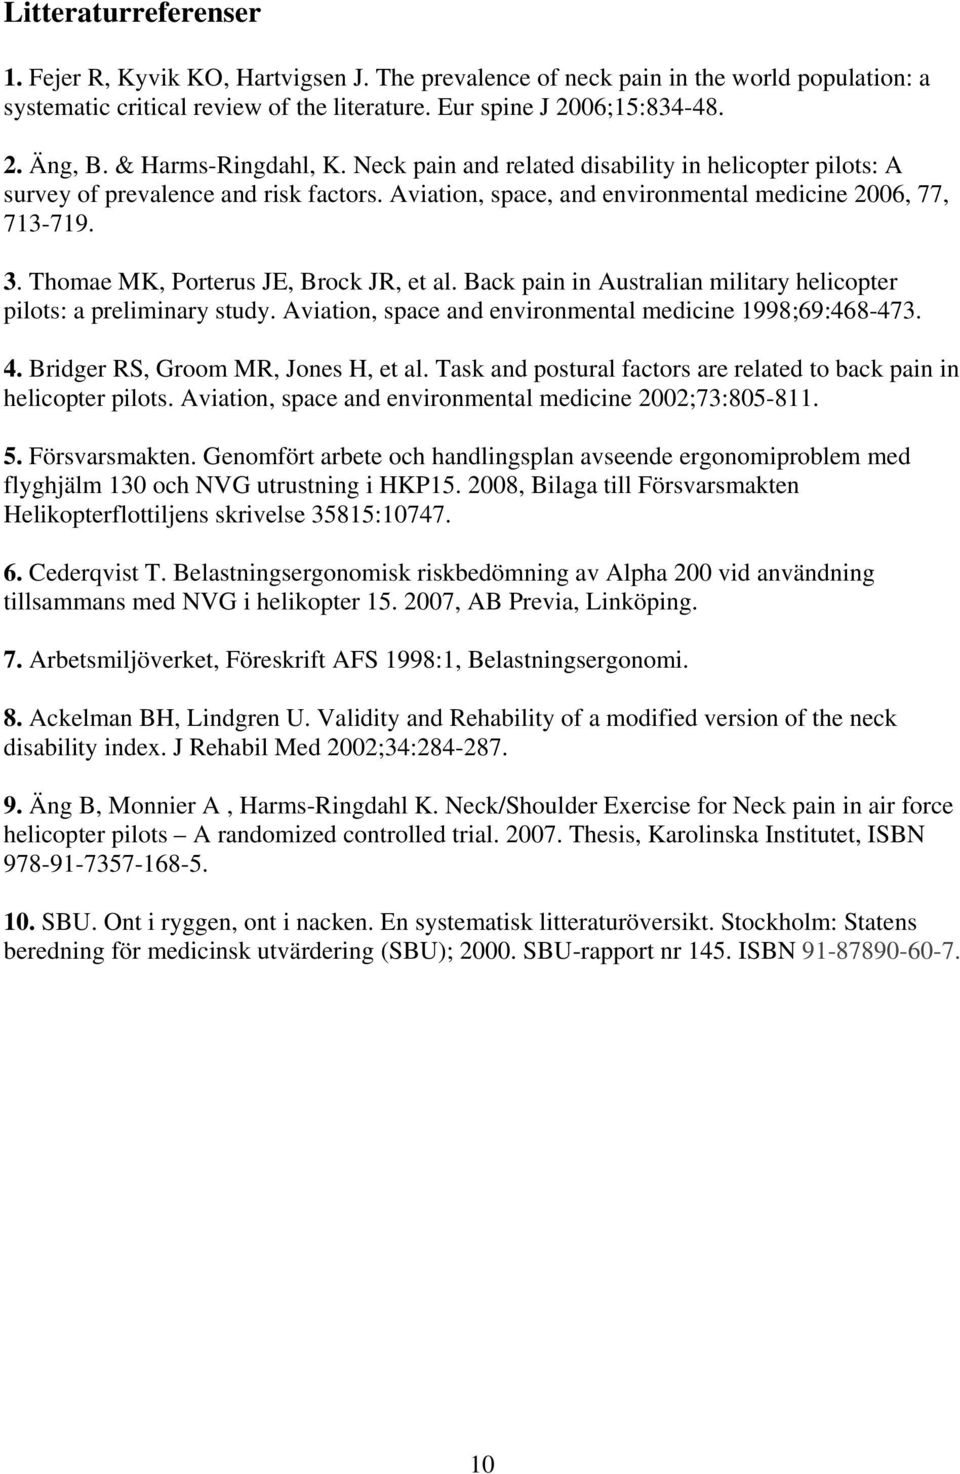 Thomae MK, Porterus JE, Brock JR, et al. Back pain in Australian military helicopter pilots: a preliminary study. Aviation, space and environmental medicine 1998;69:468-473. 4.